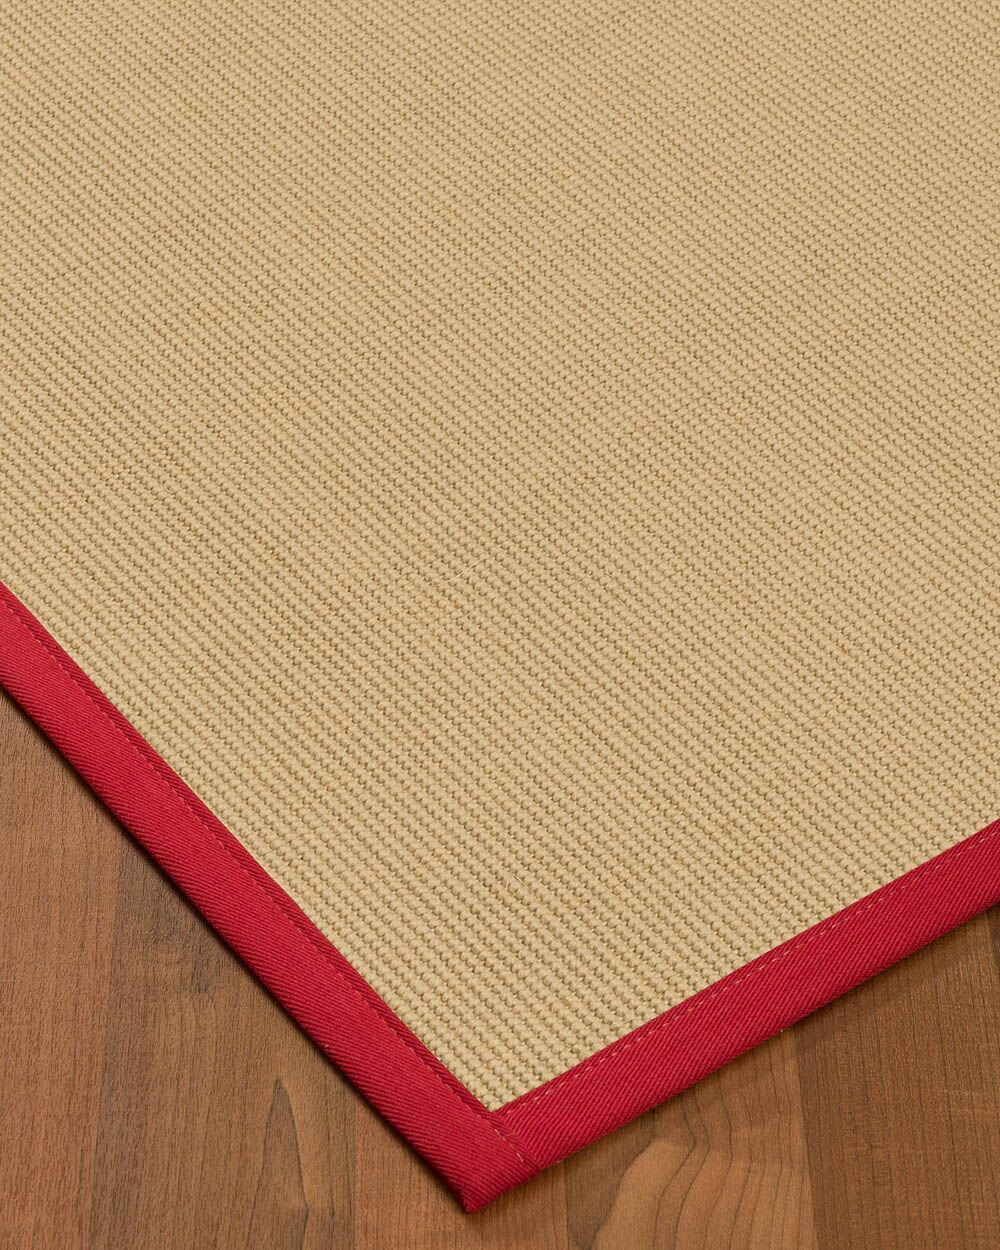 Vannatta Border Hand-Woven Wool Beige/Red Area Rug Rug Size: Rectangle 9' x 12', Rug Pad Included: Yes